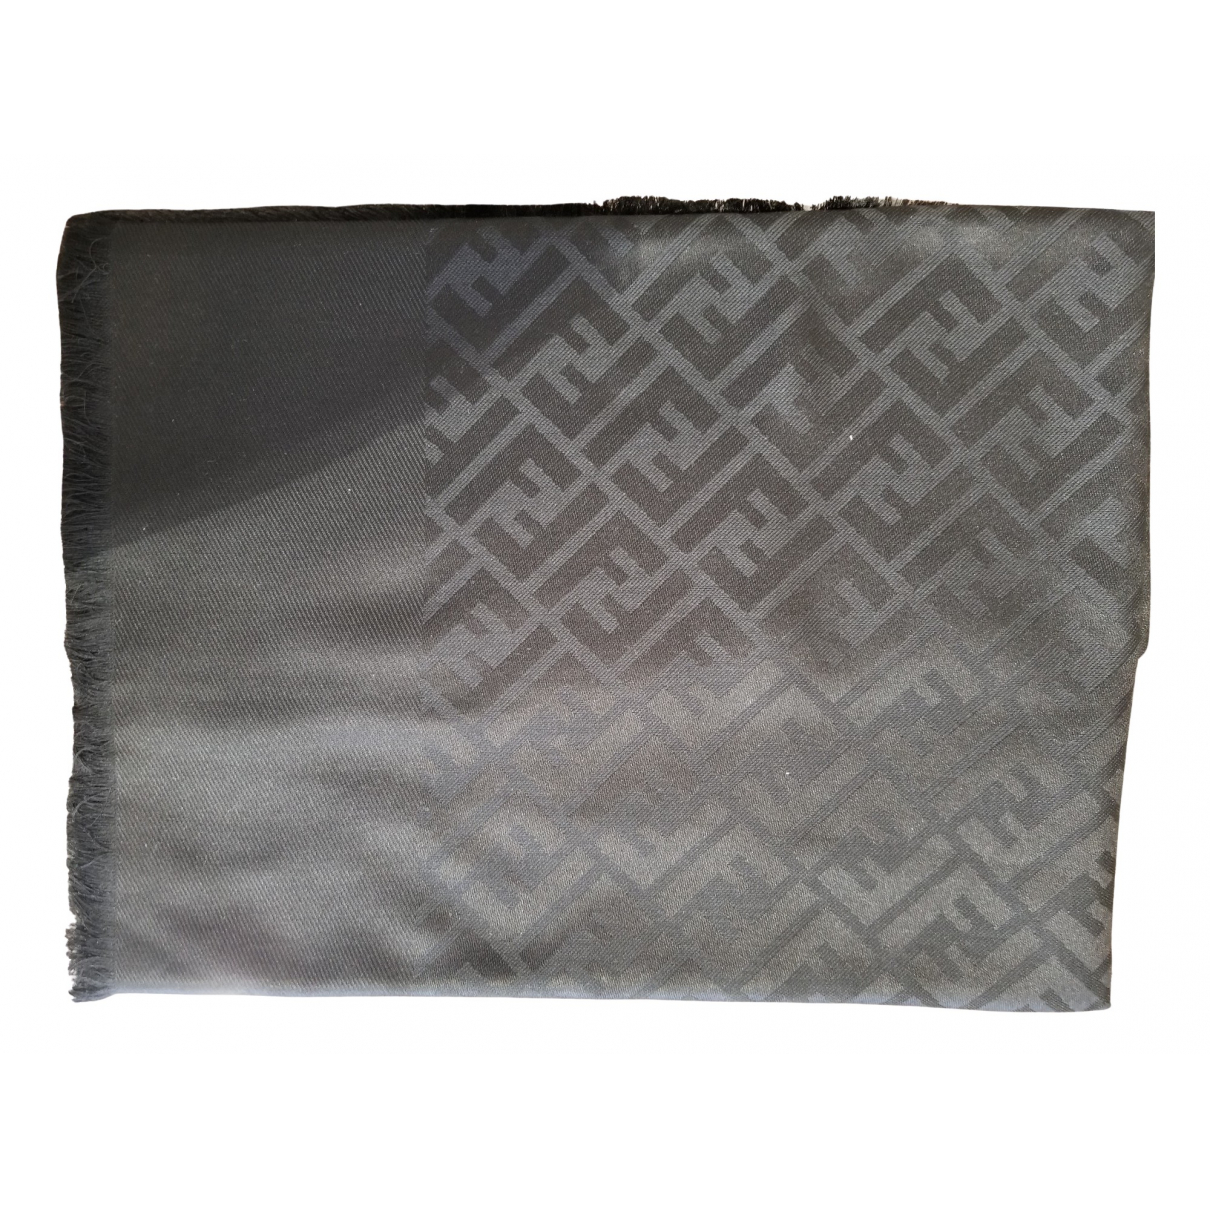 Fendi N Black Cashmere scarf for Women N